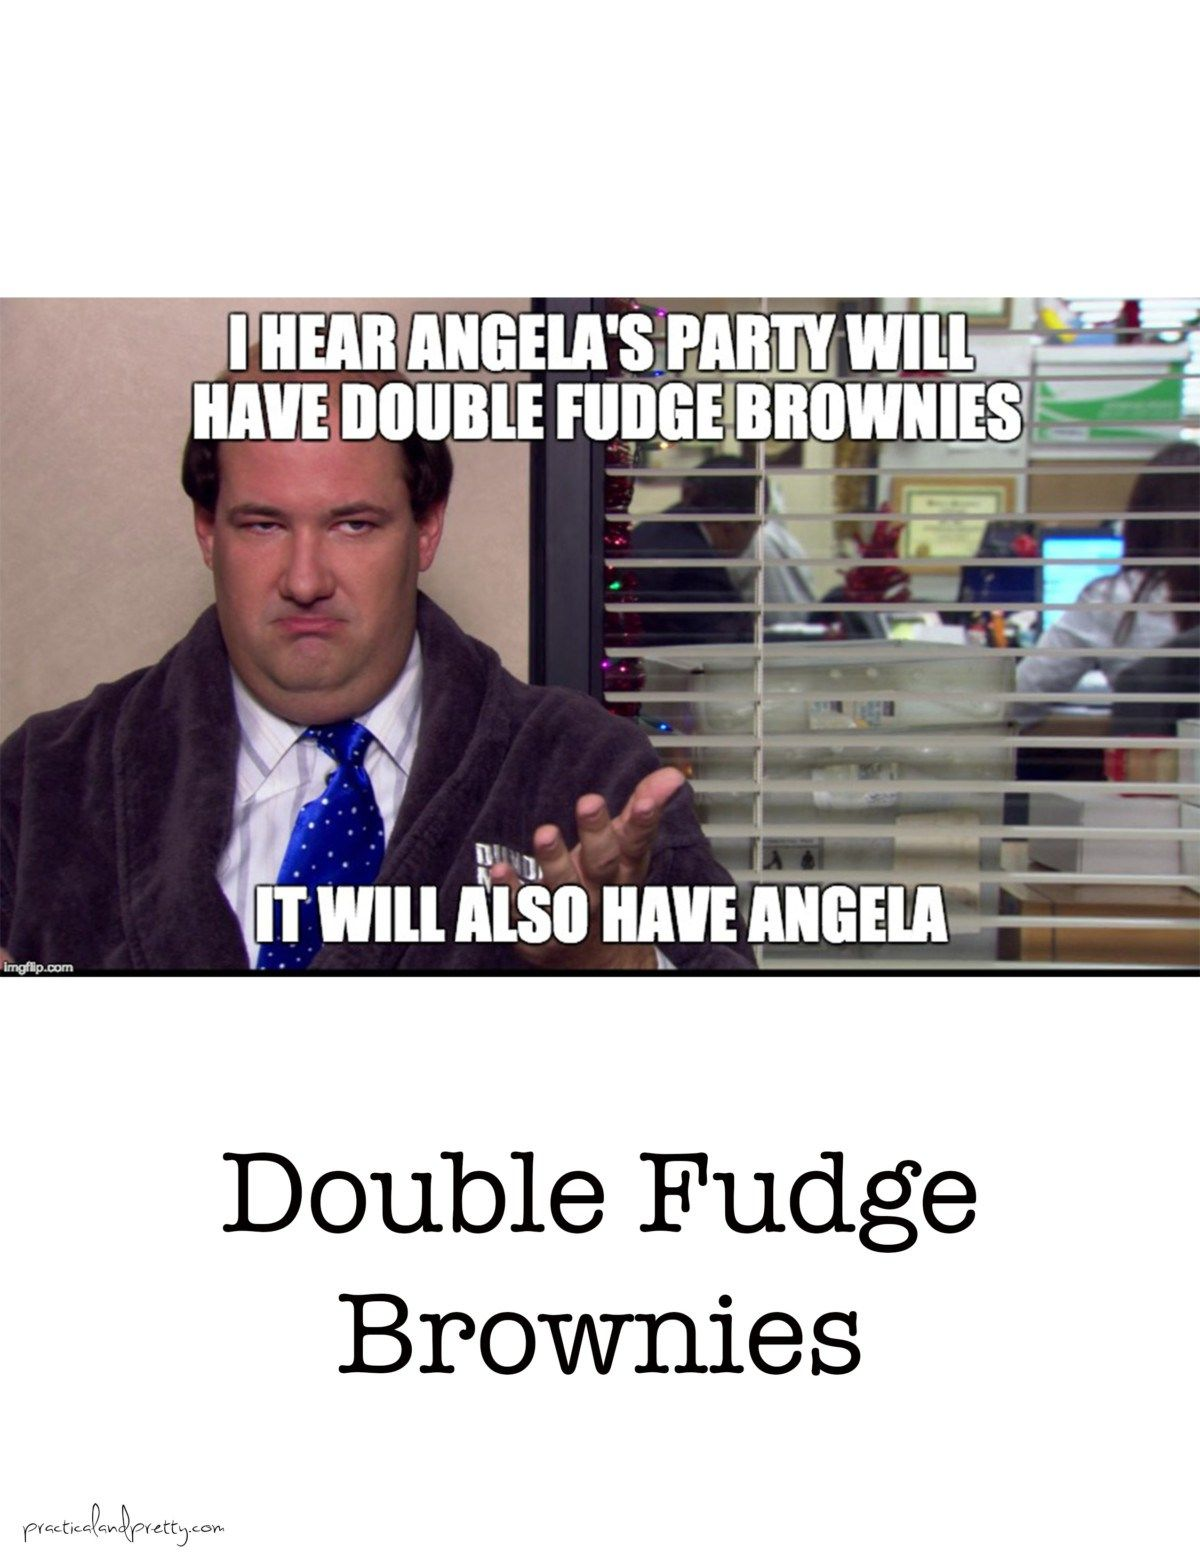 The Office Food Themed Memes | The Office Party | Pinterest | Office ...